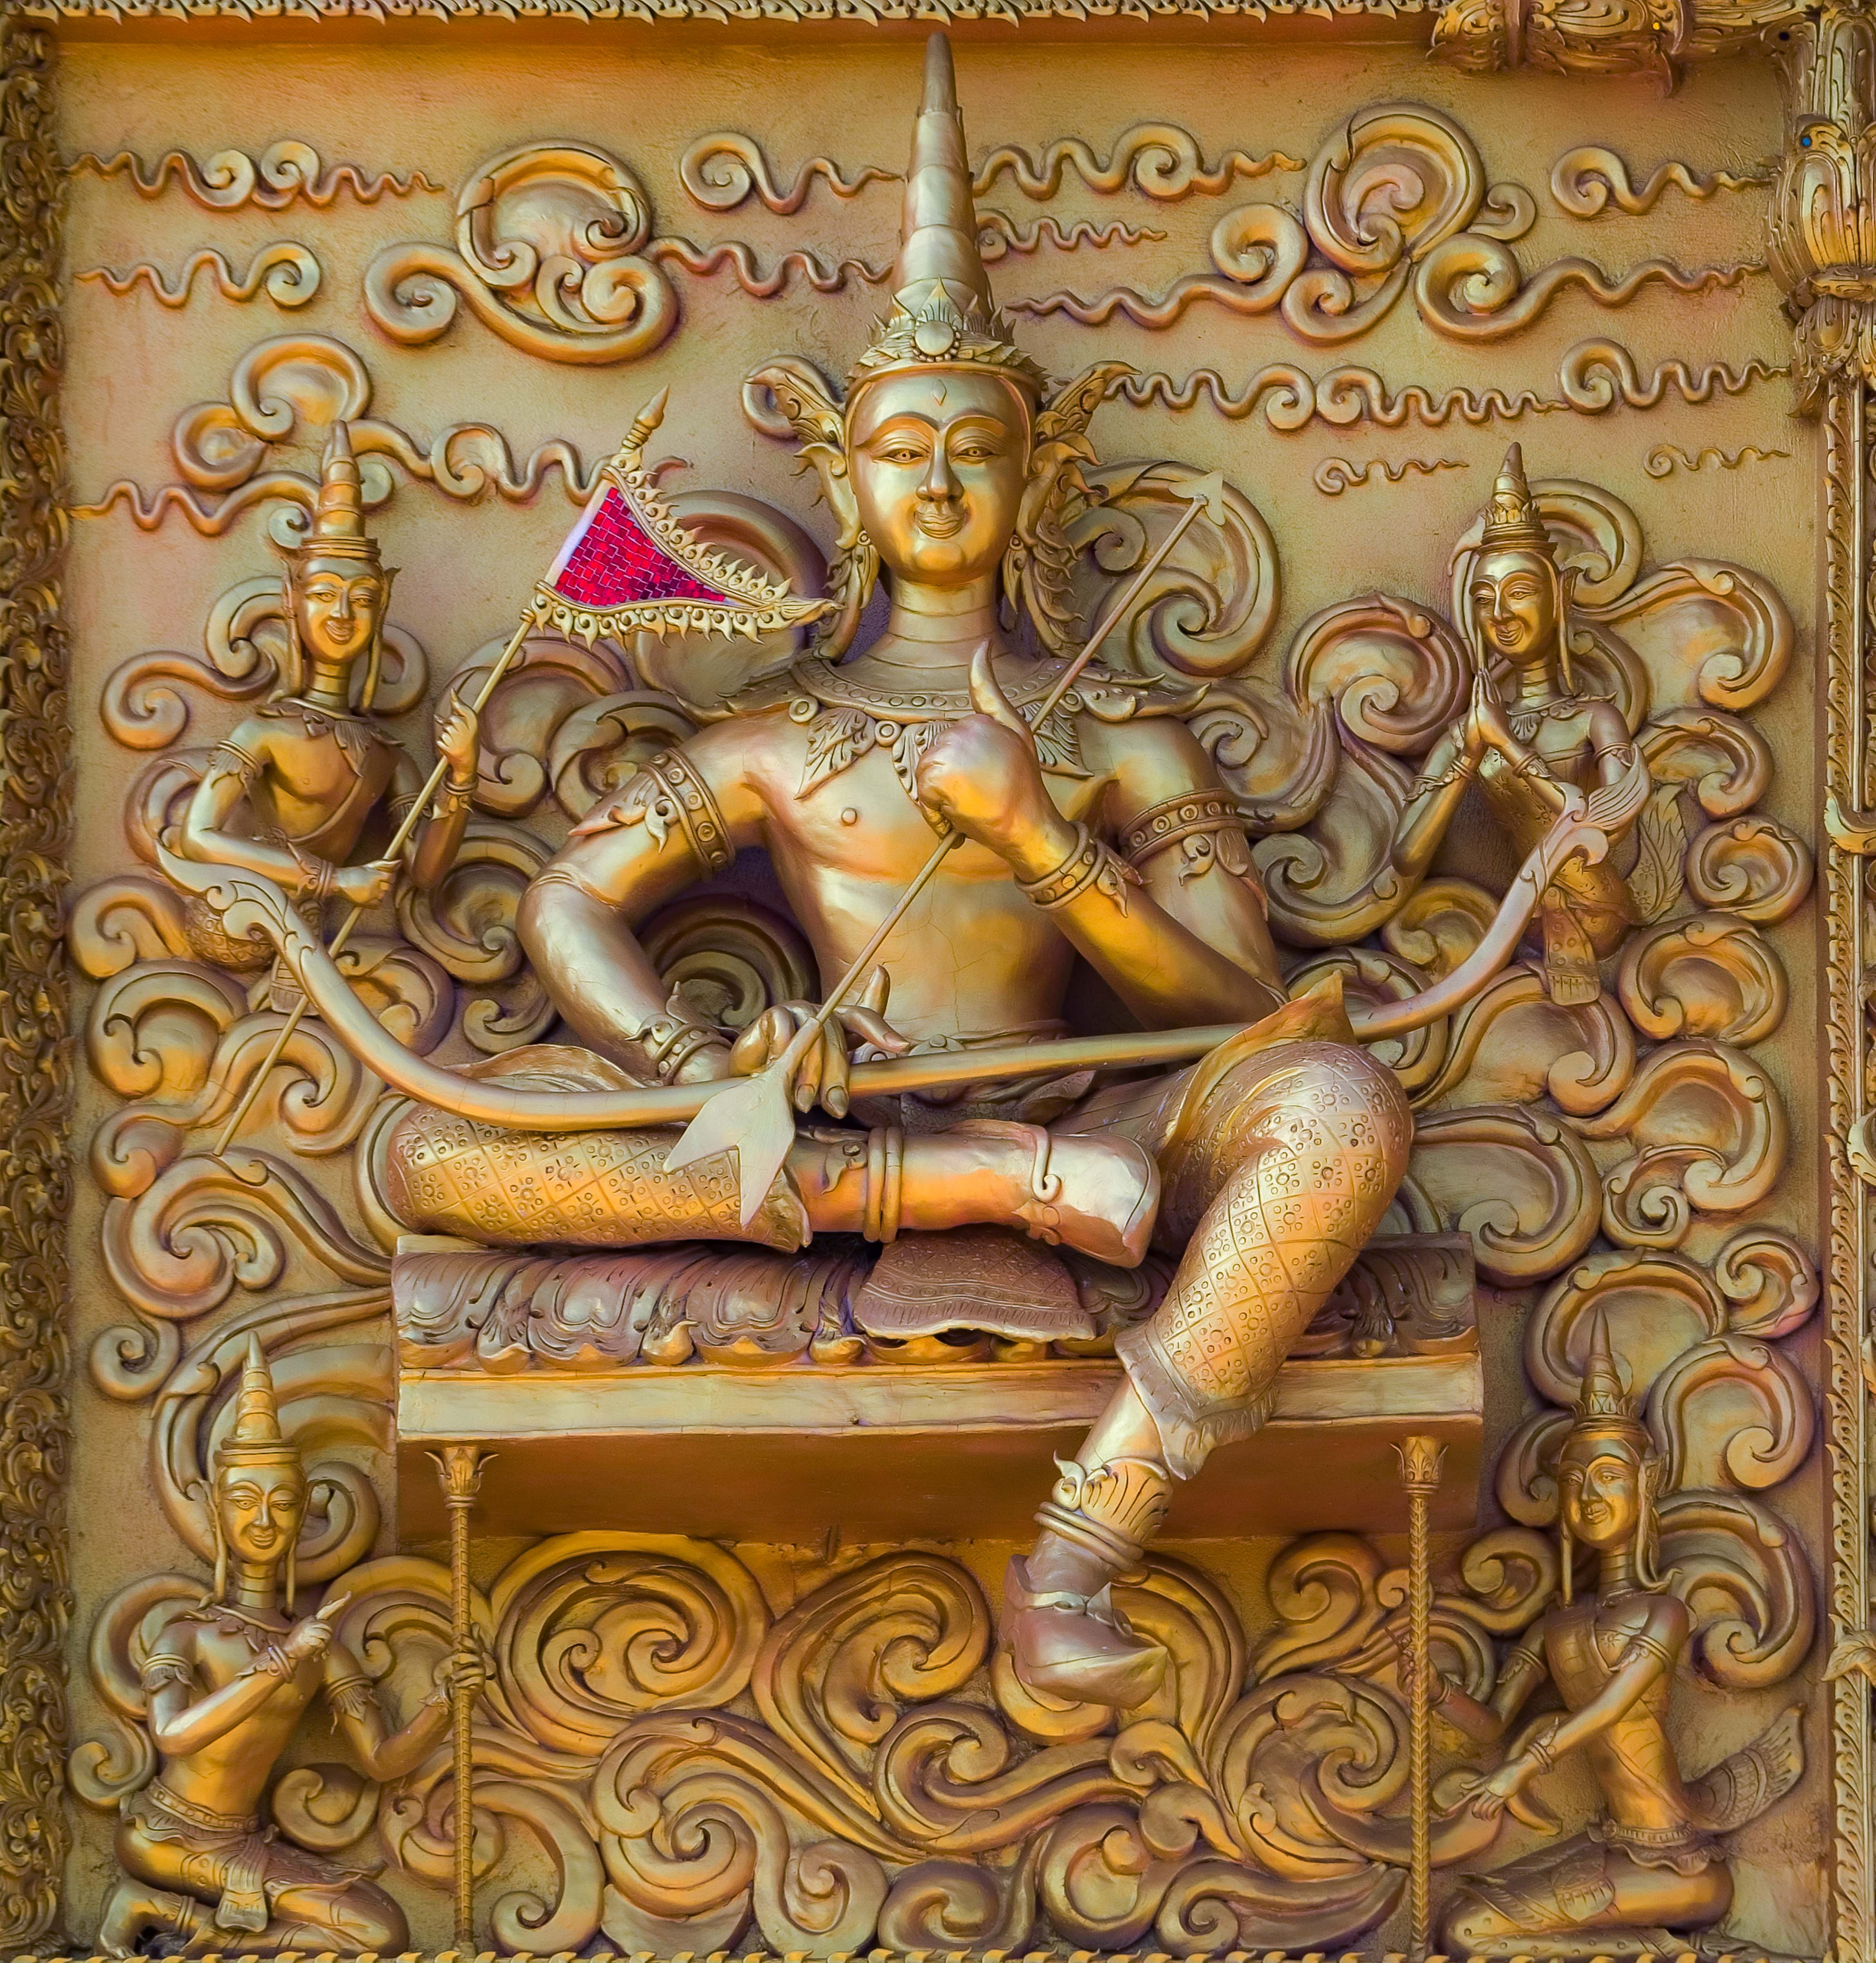 Thailand, Nan Prov, Temple Relief, 2008, IMG 6583